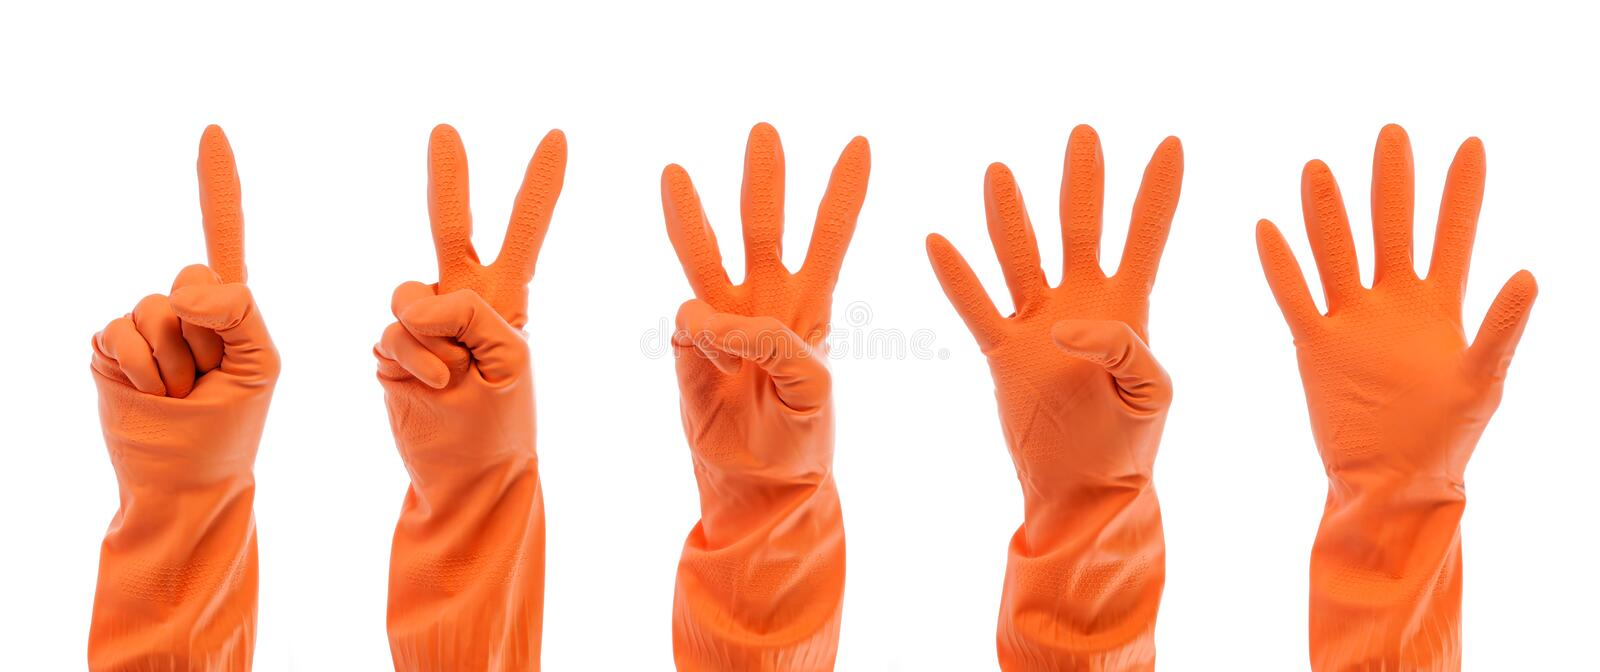 Hand collection royalty free stock photos